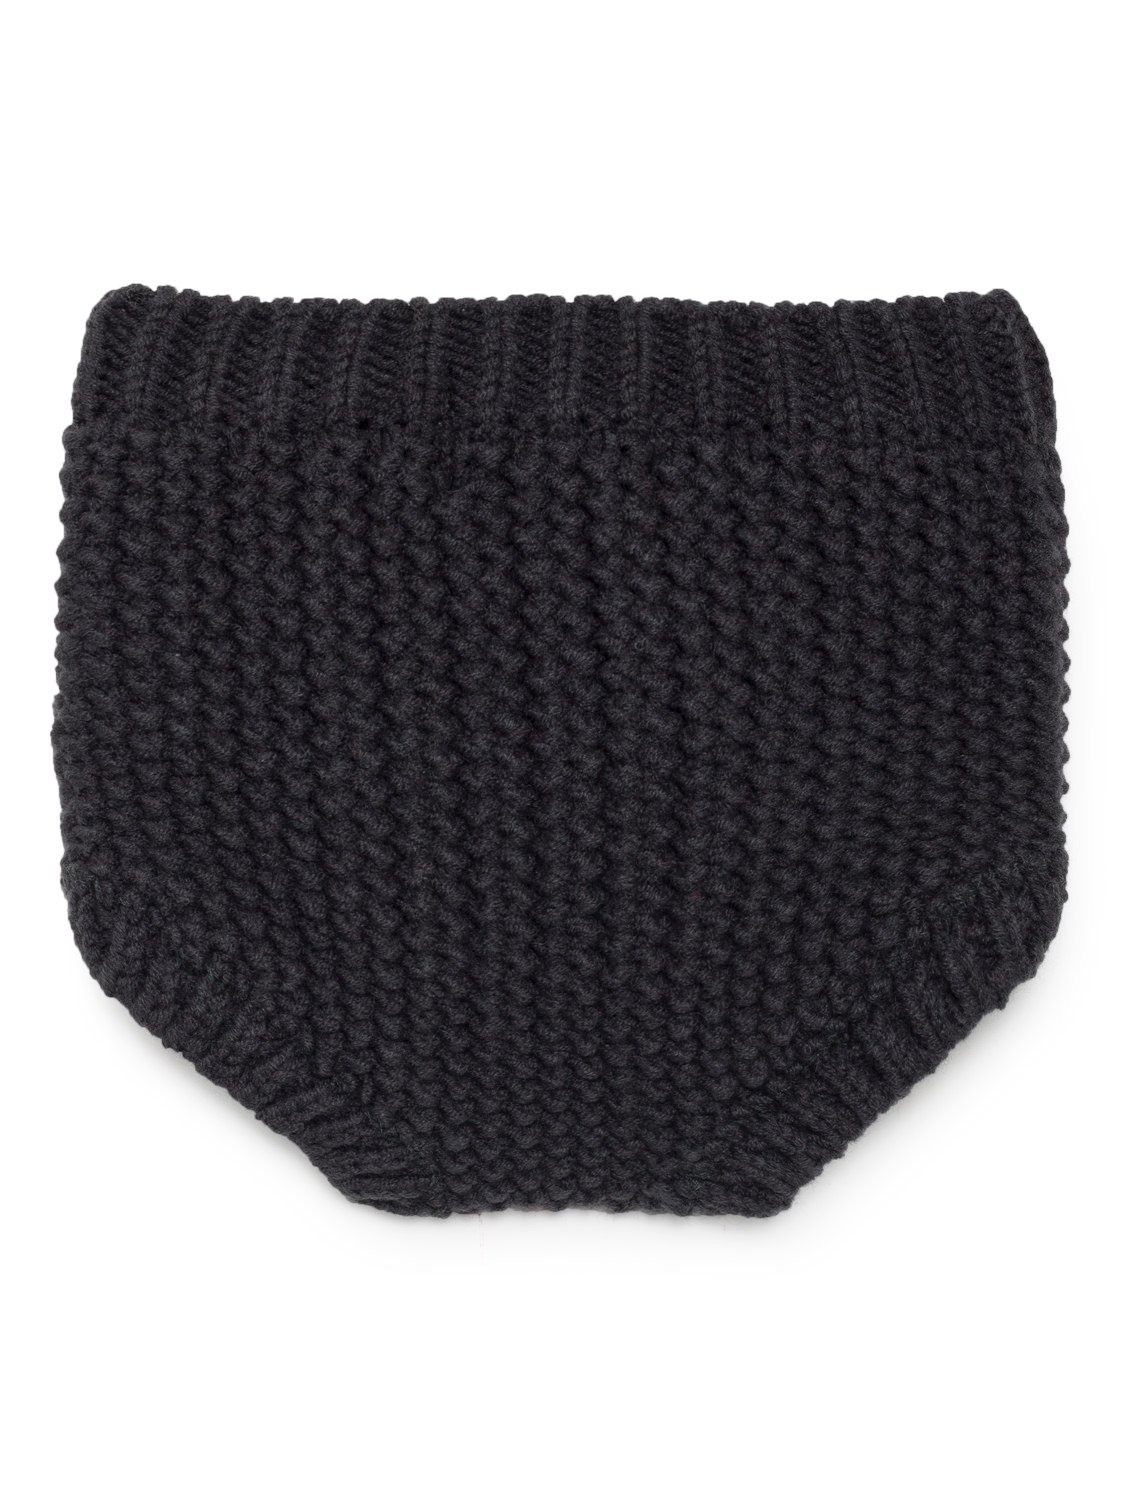 Black Knitted Culotte